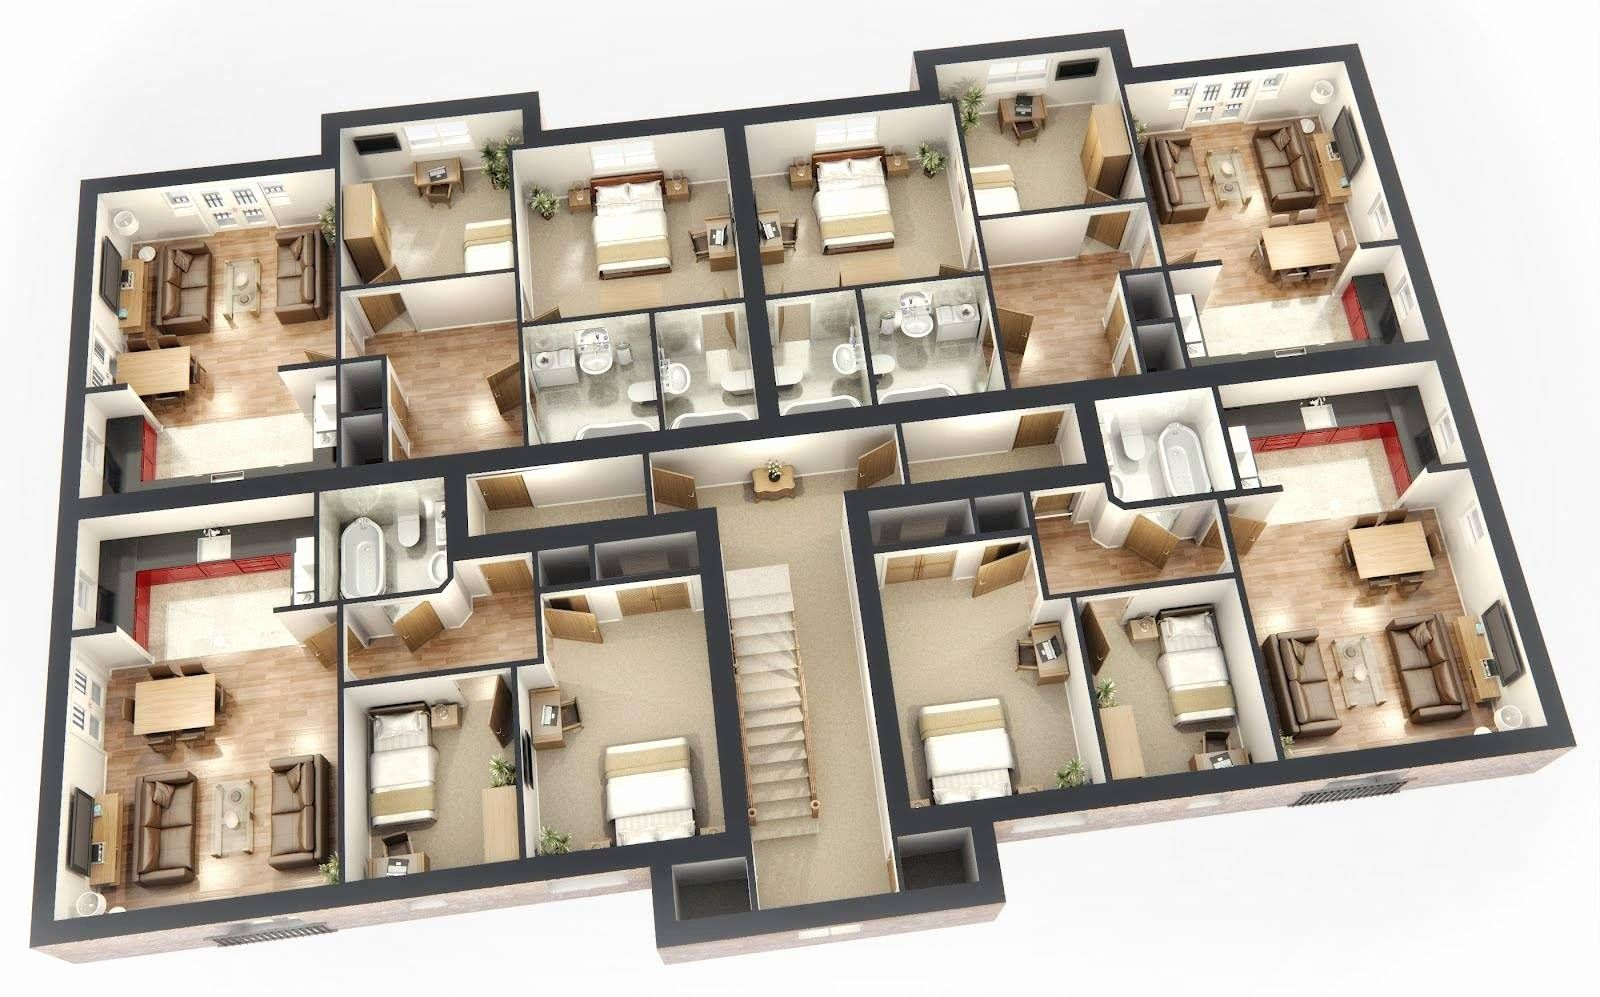 5 Bedroom House Plans 3d Fresh Another Big House 3d House Plans Floor Plans Small Apartment House Plans 3d House Plans House Blueprints